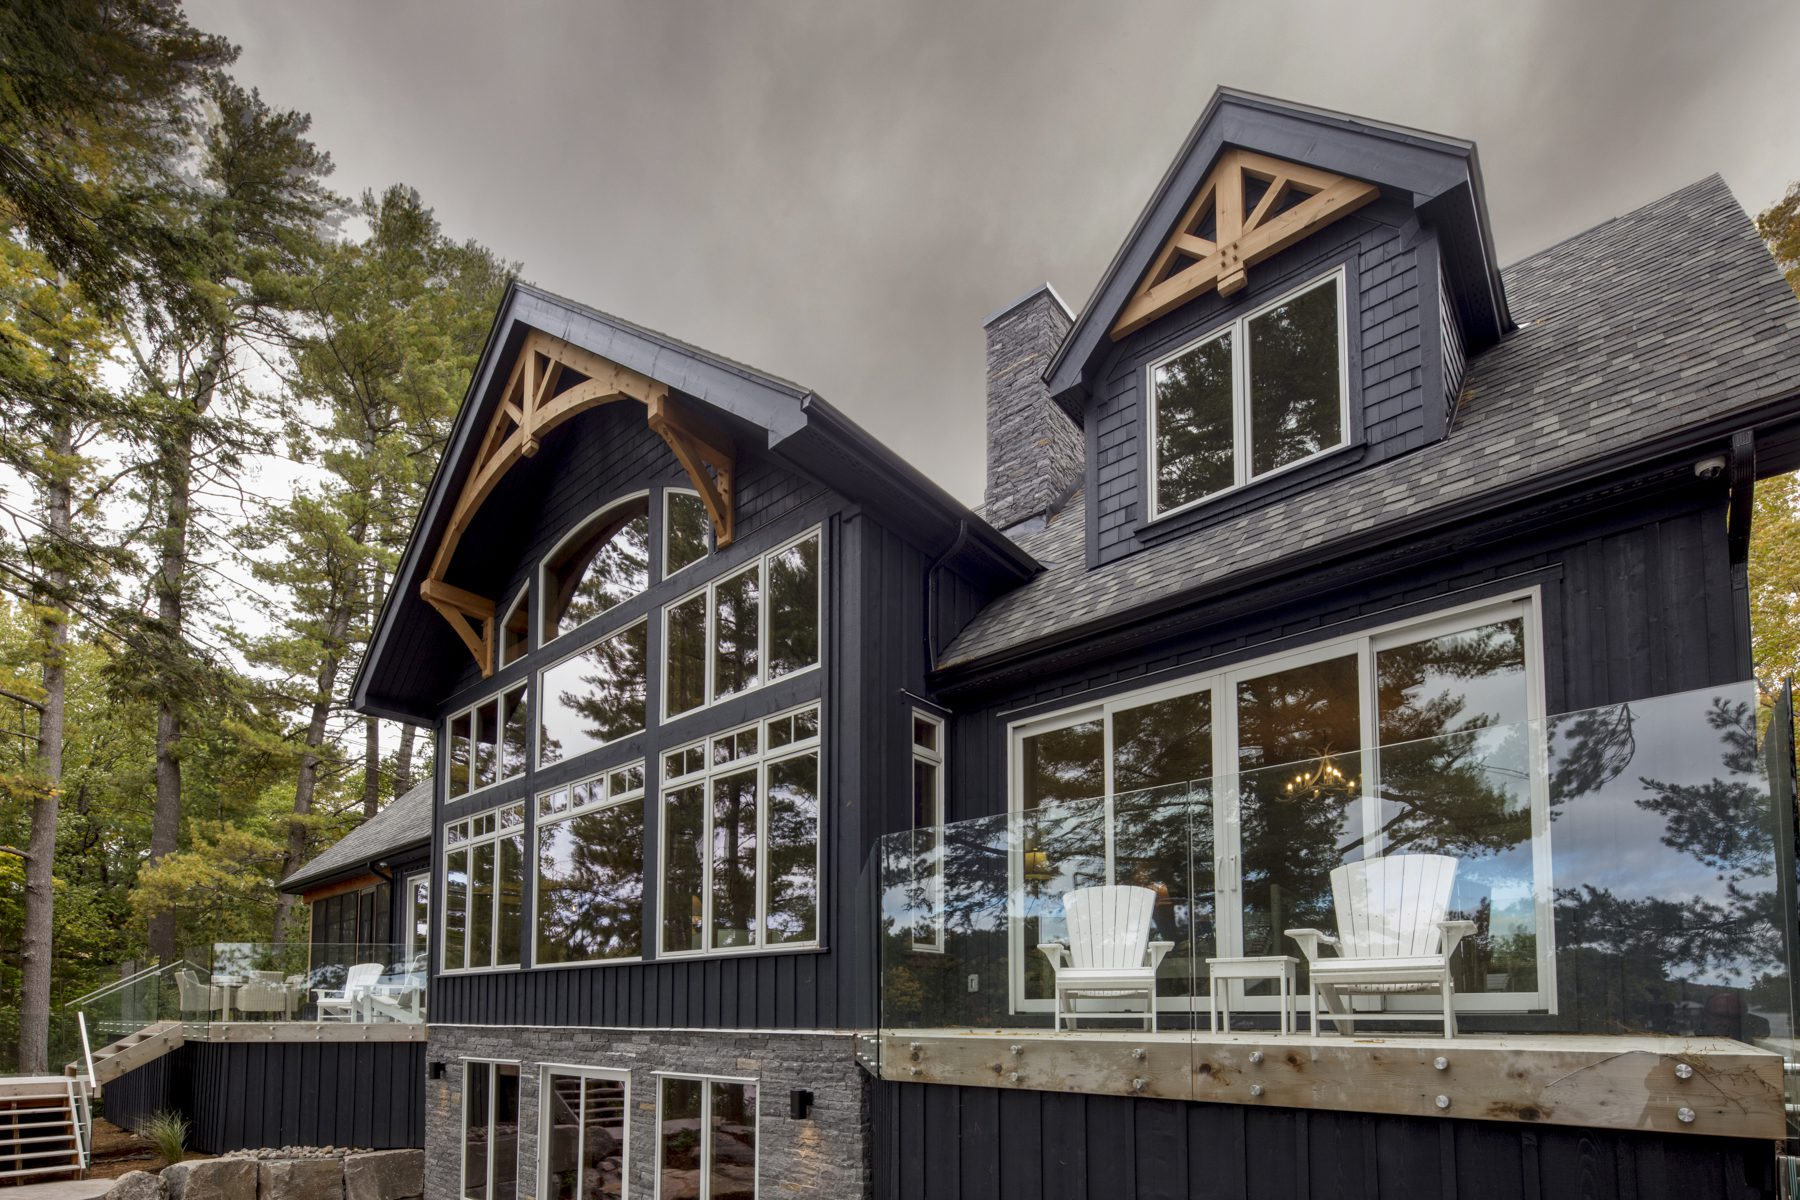 Normerica Timber Frame, Exterior, Cottage, Rear View, Lake View, Porch, Deck